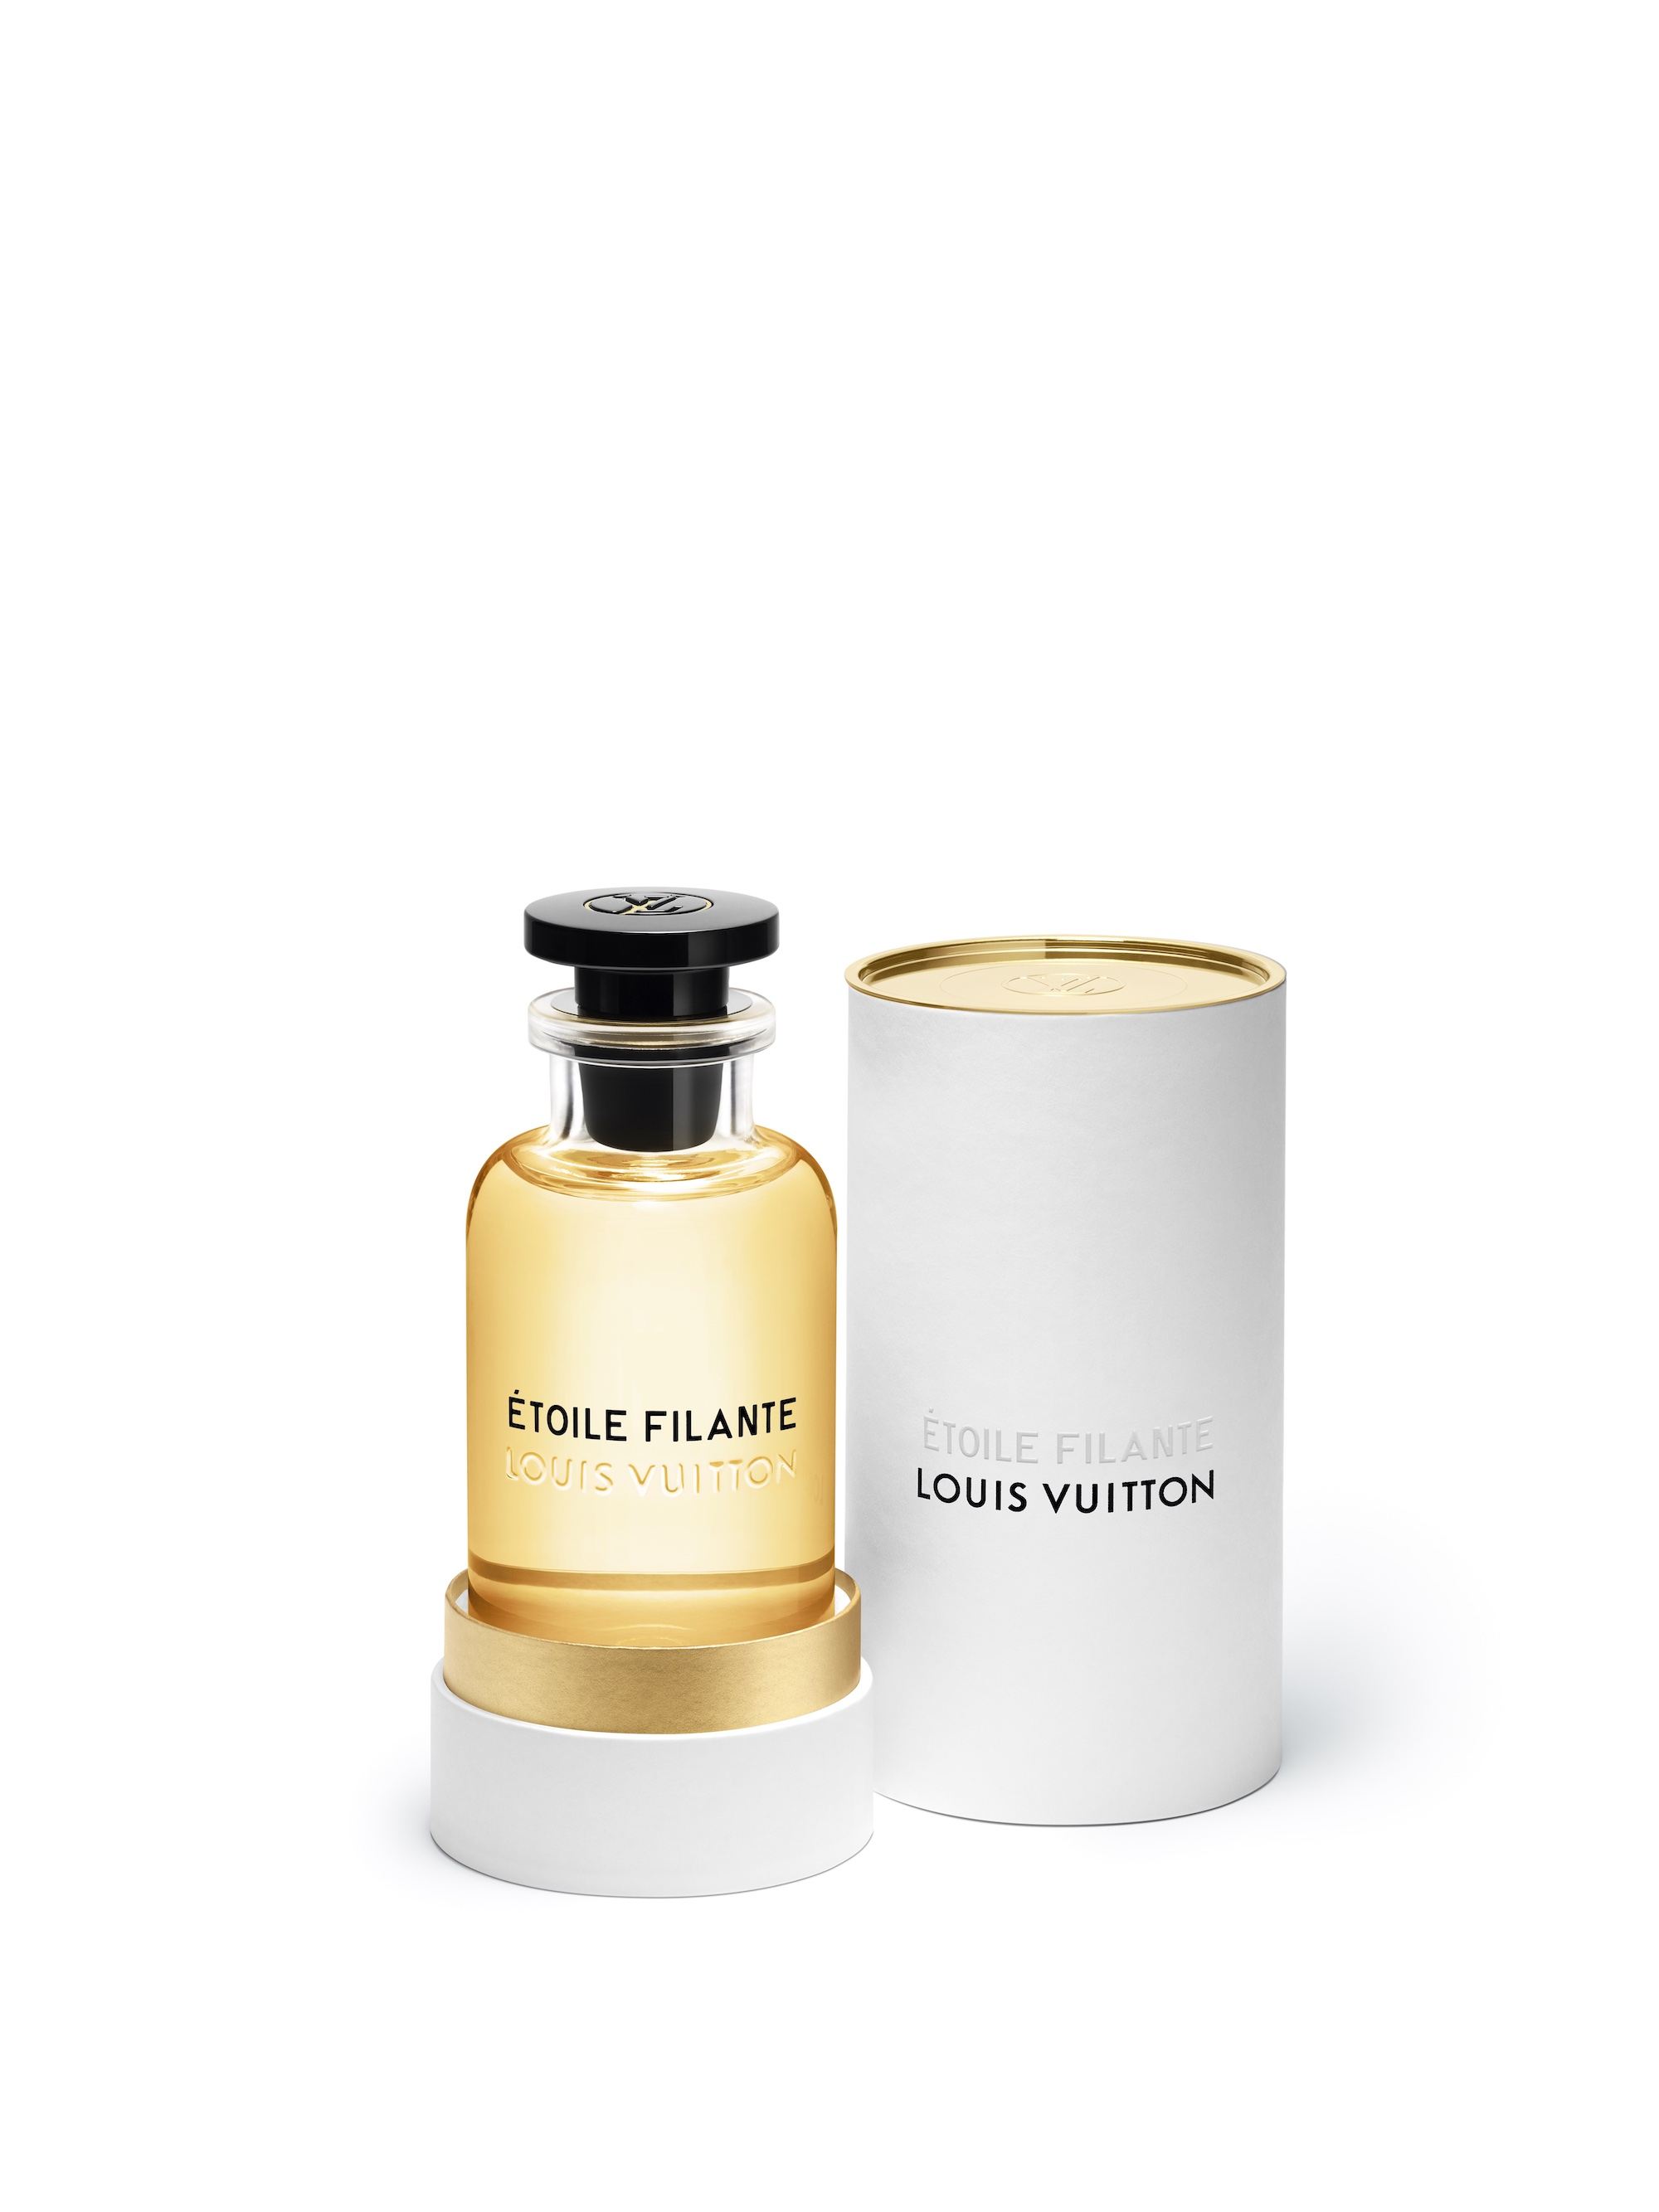 Louis Vuitton Les Perfumes 100ml bottle and case